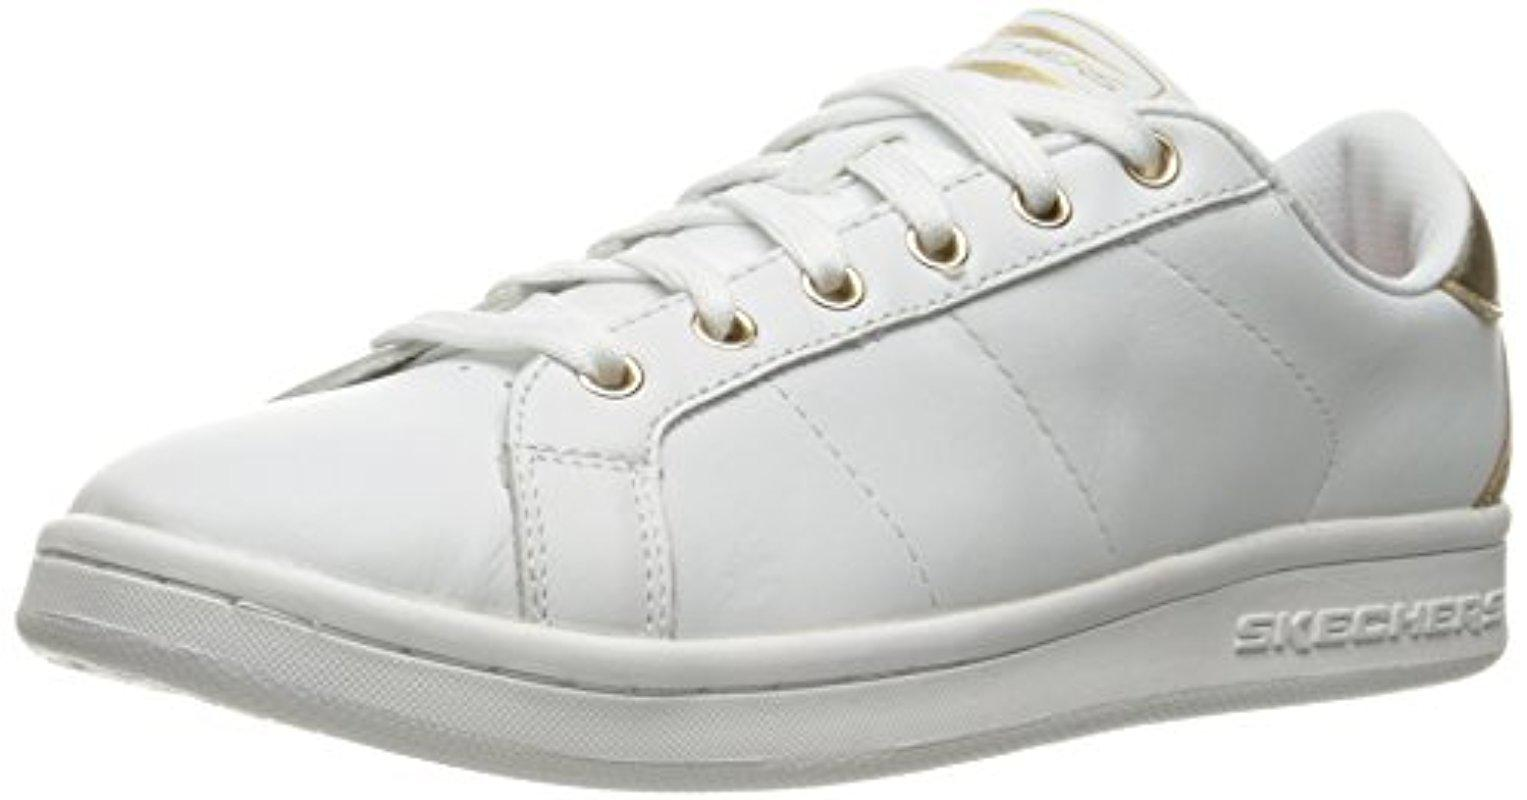 08b7849b6b57 Lyst - Skechers Street Onix Fashion Sneaker in White